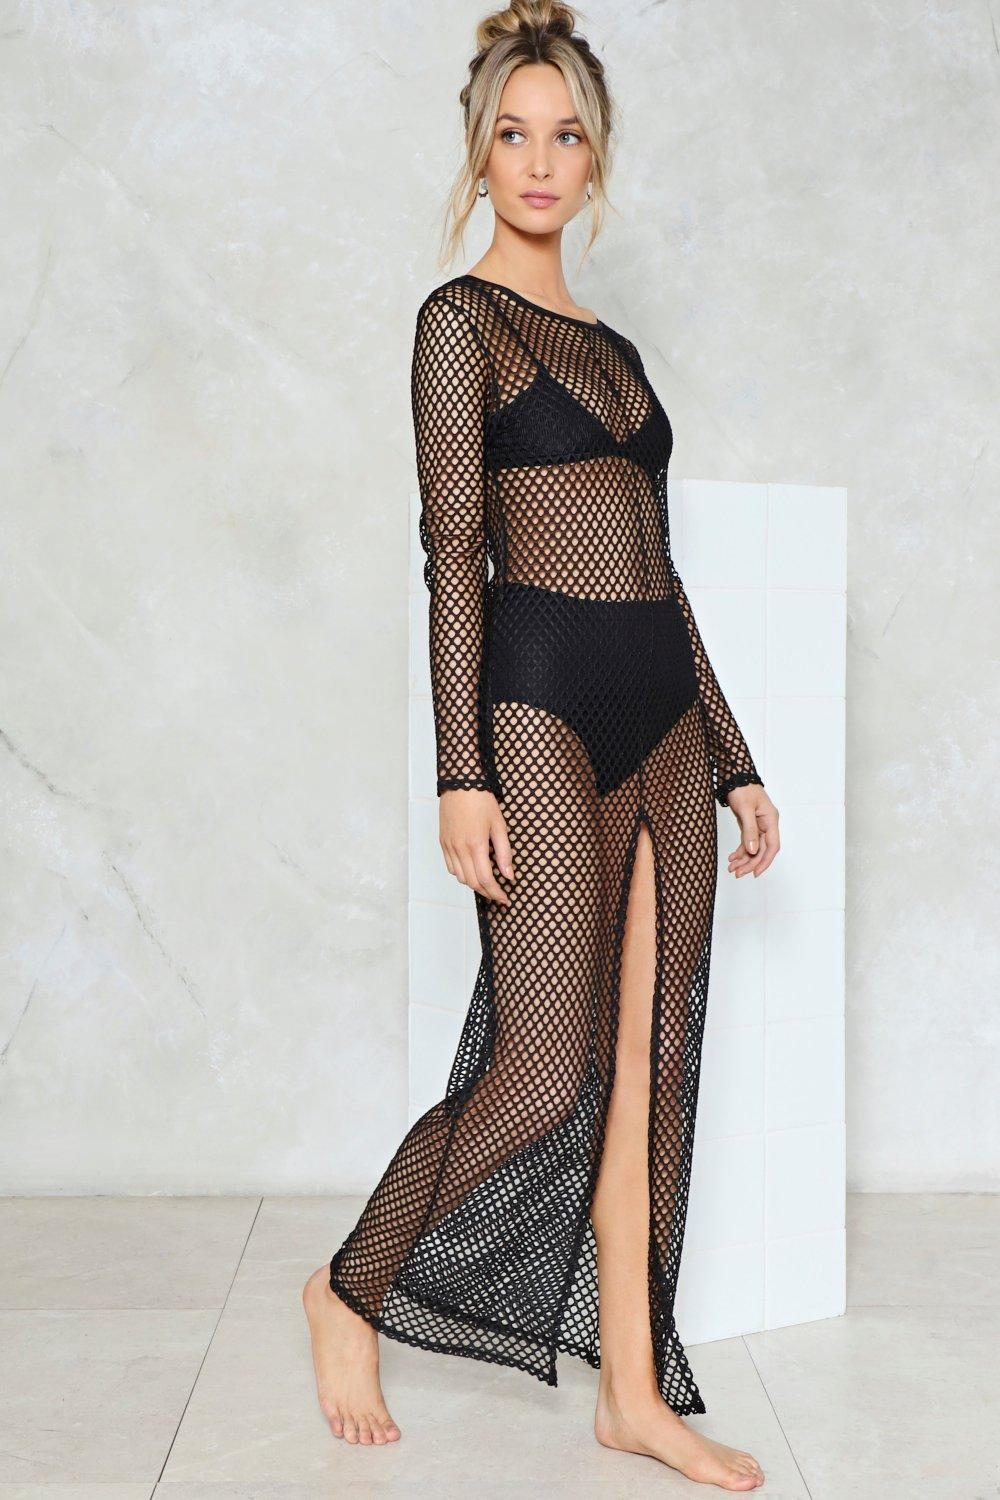 c0be49f0fa640 Net Ahead Fishnet Cover-Up | Shop Clothes at Nasty Gal!